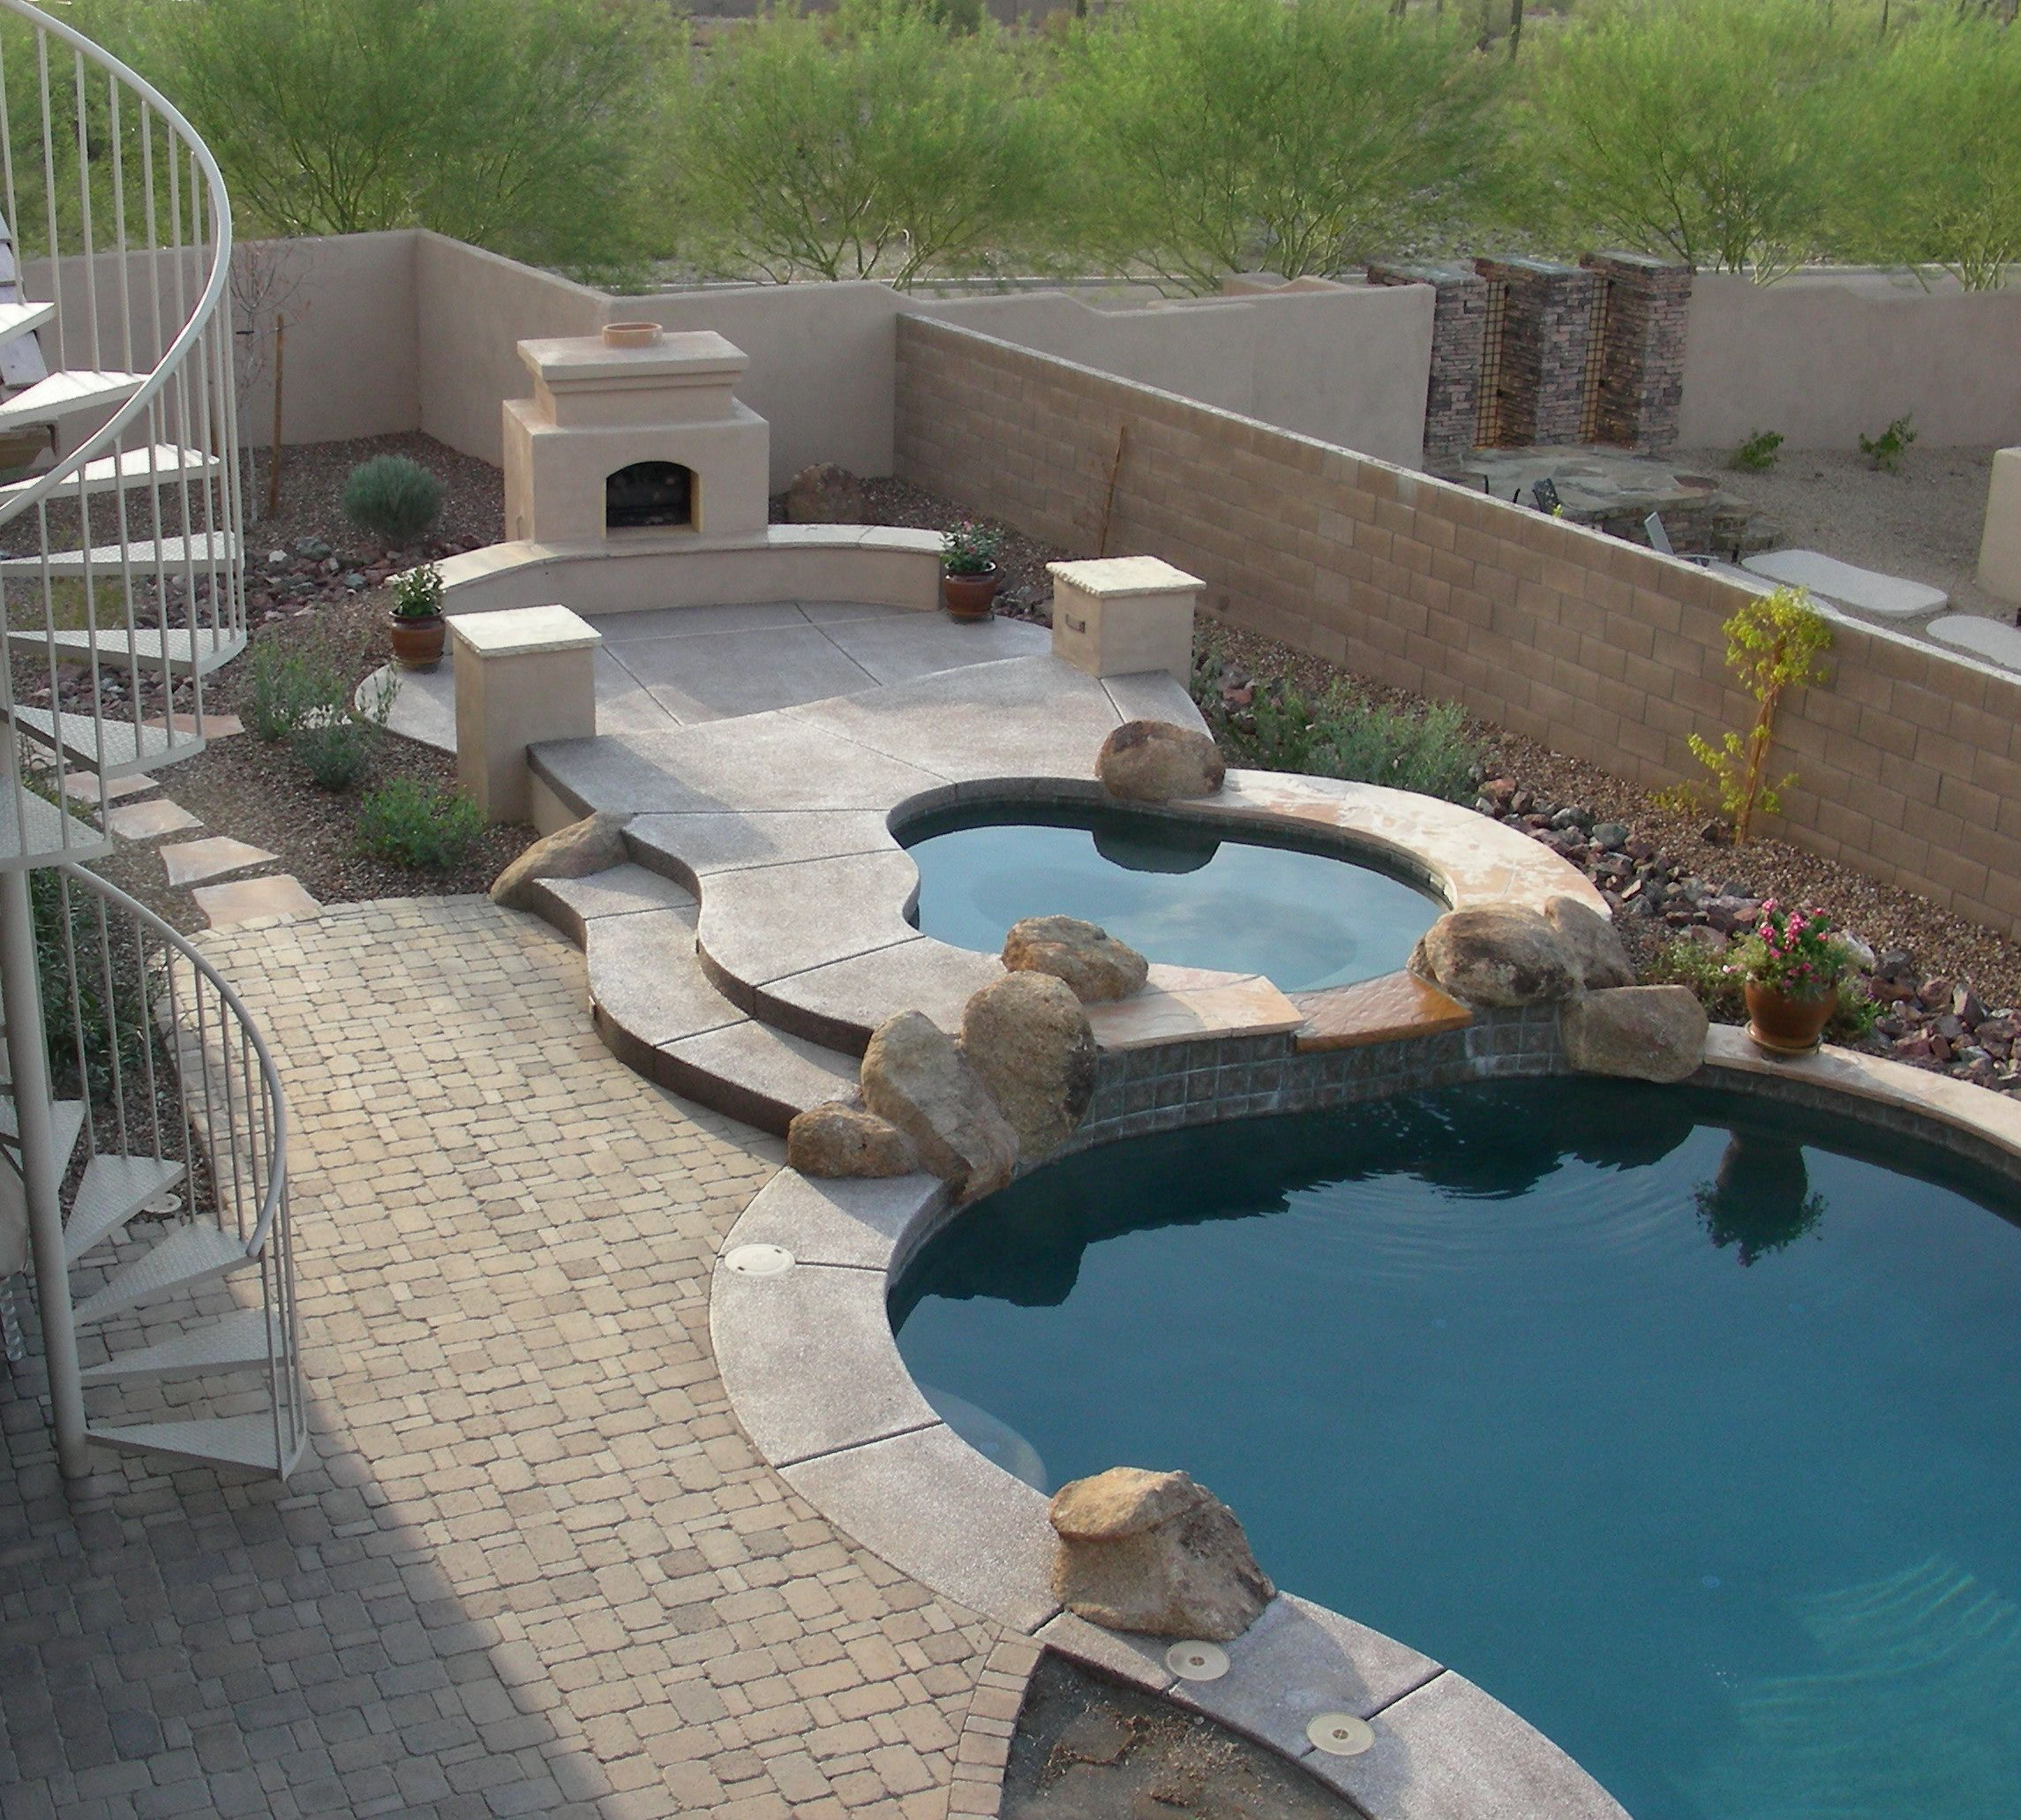 patio swimming pools austin swimming pool builders spa deck - Swimming Pool And Spa Design